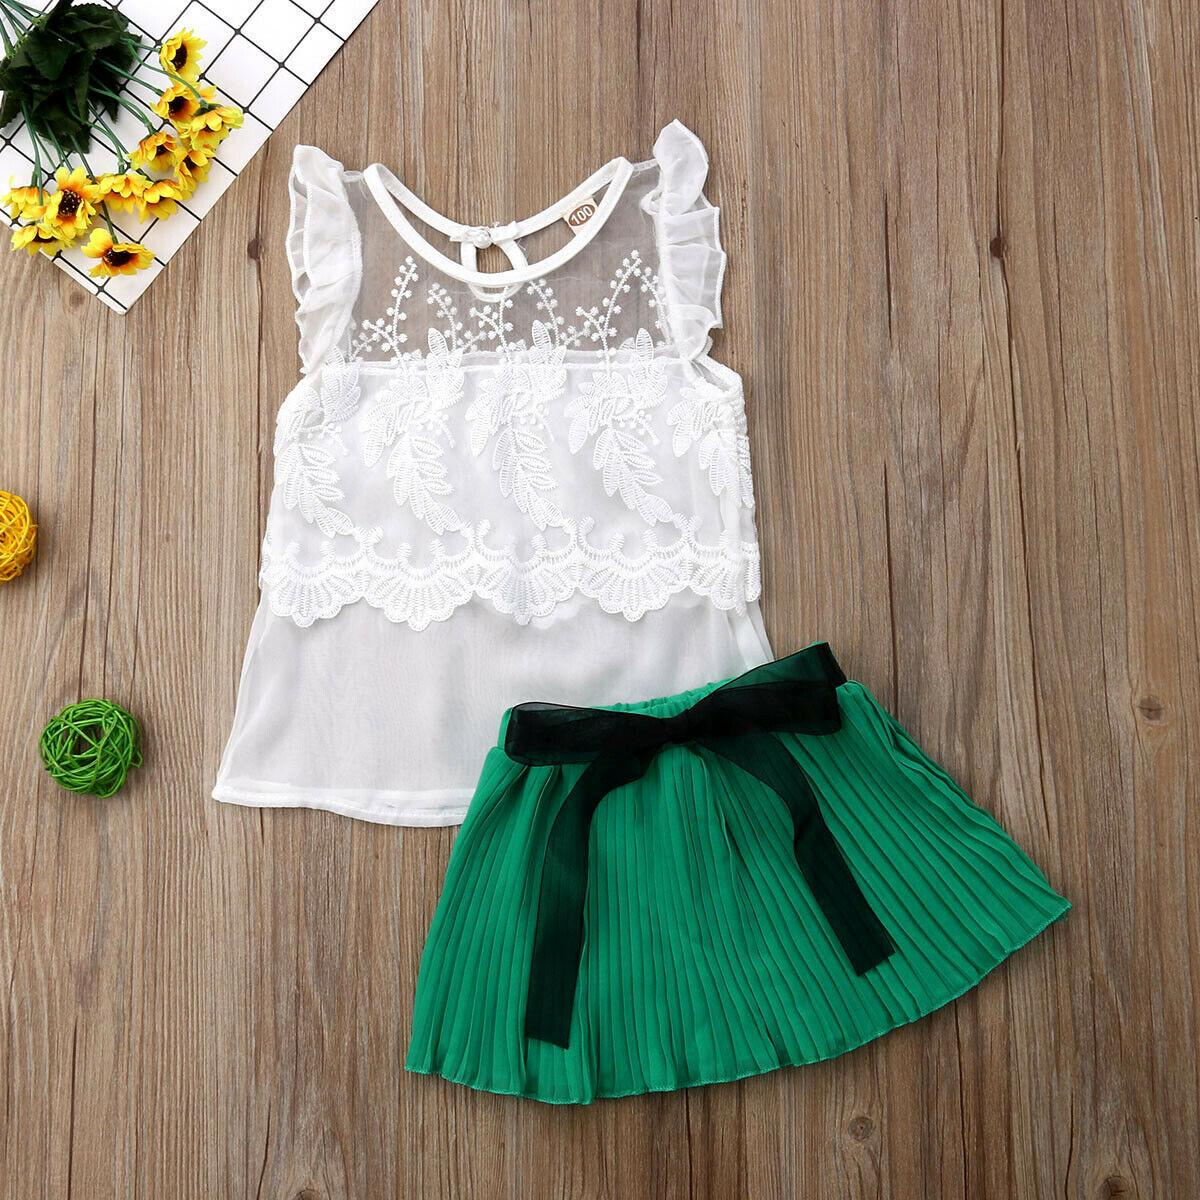 Emmababy Fashion Girl Set 18M-5Y US Toddler Baby Girls Leisure Breathable Lace Short Top+Fashion Chiffon Skirt